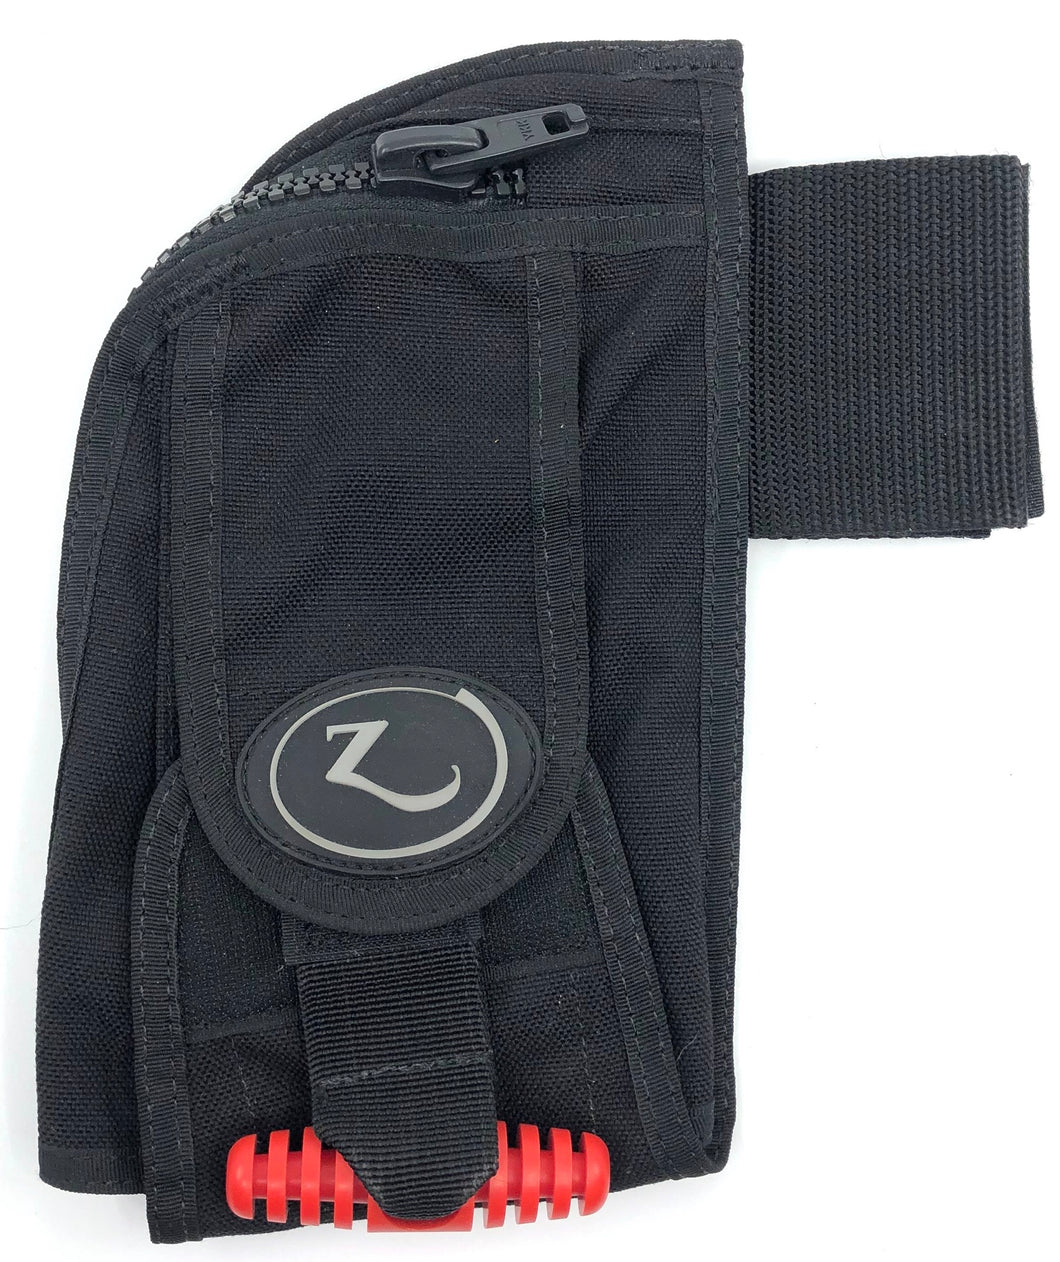 Zeagle Left Rear Weight Pocket